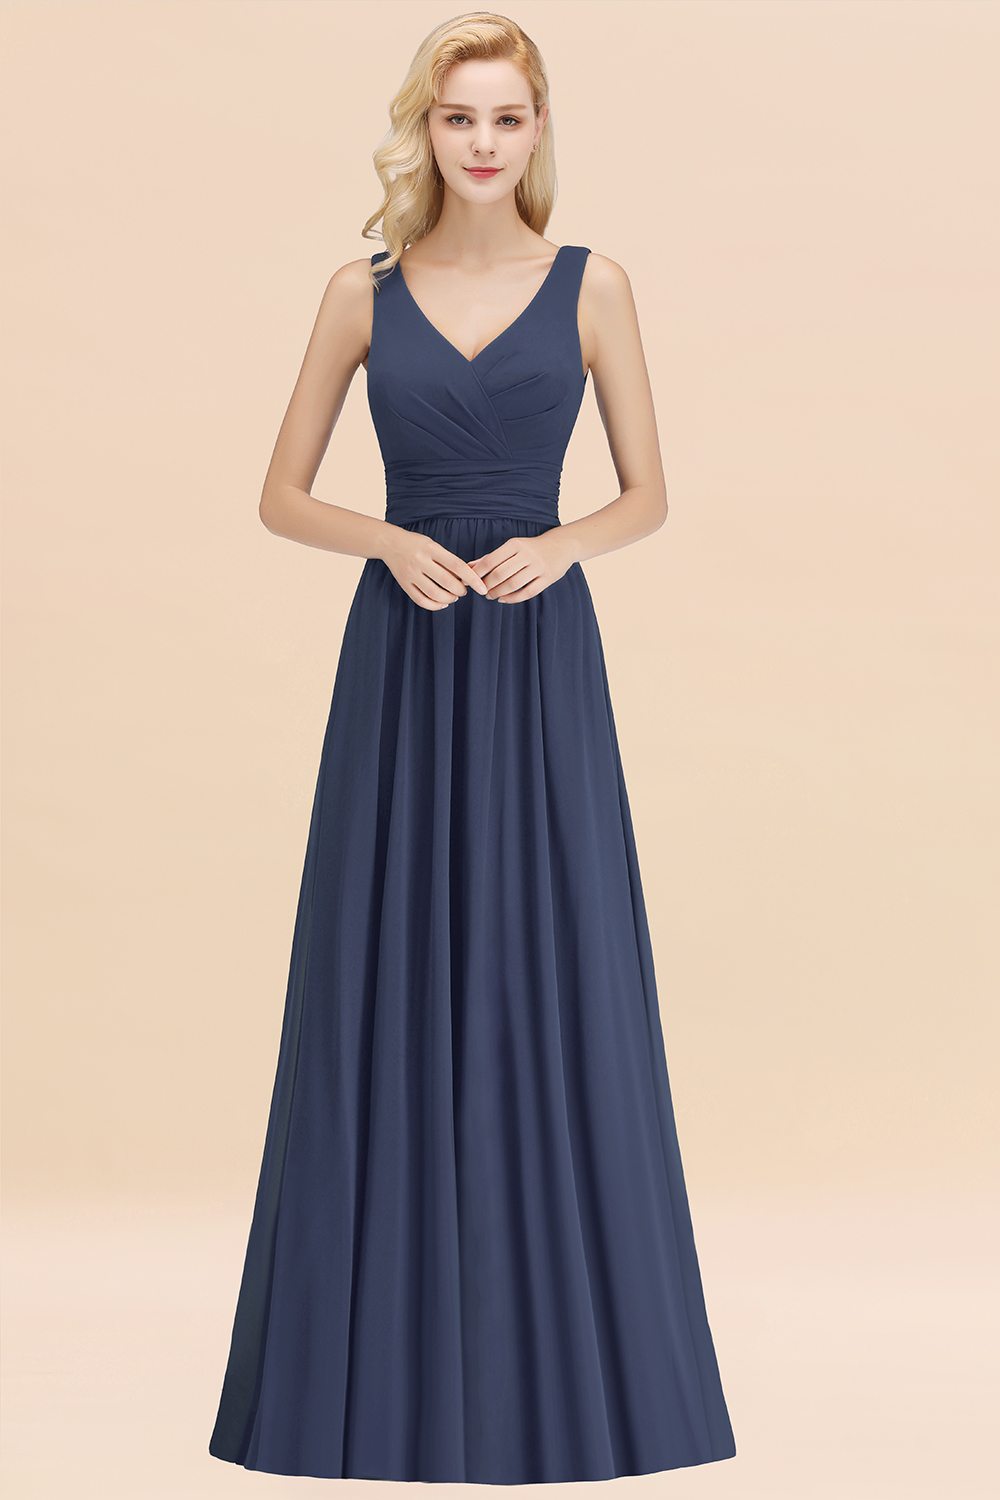 BMbridal Modest Sleeveless V-Neck Long Chiffon Bridesmaid Dress Online with Ruffle